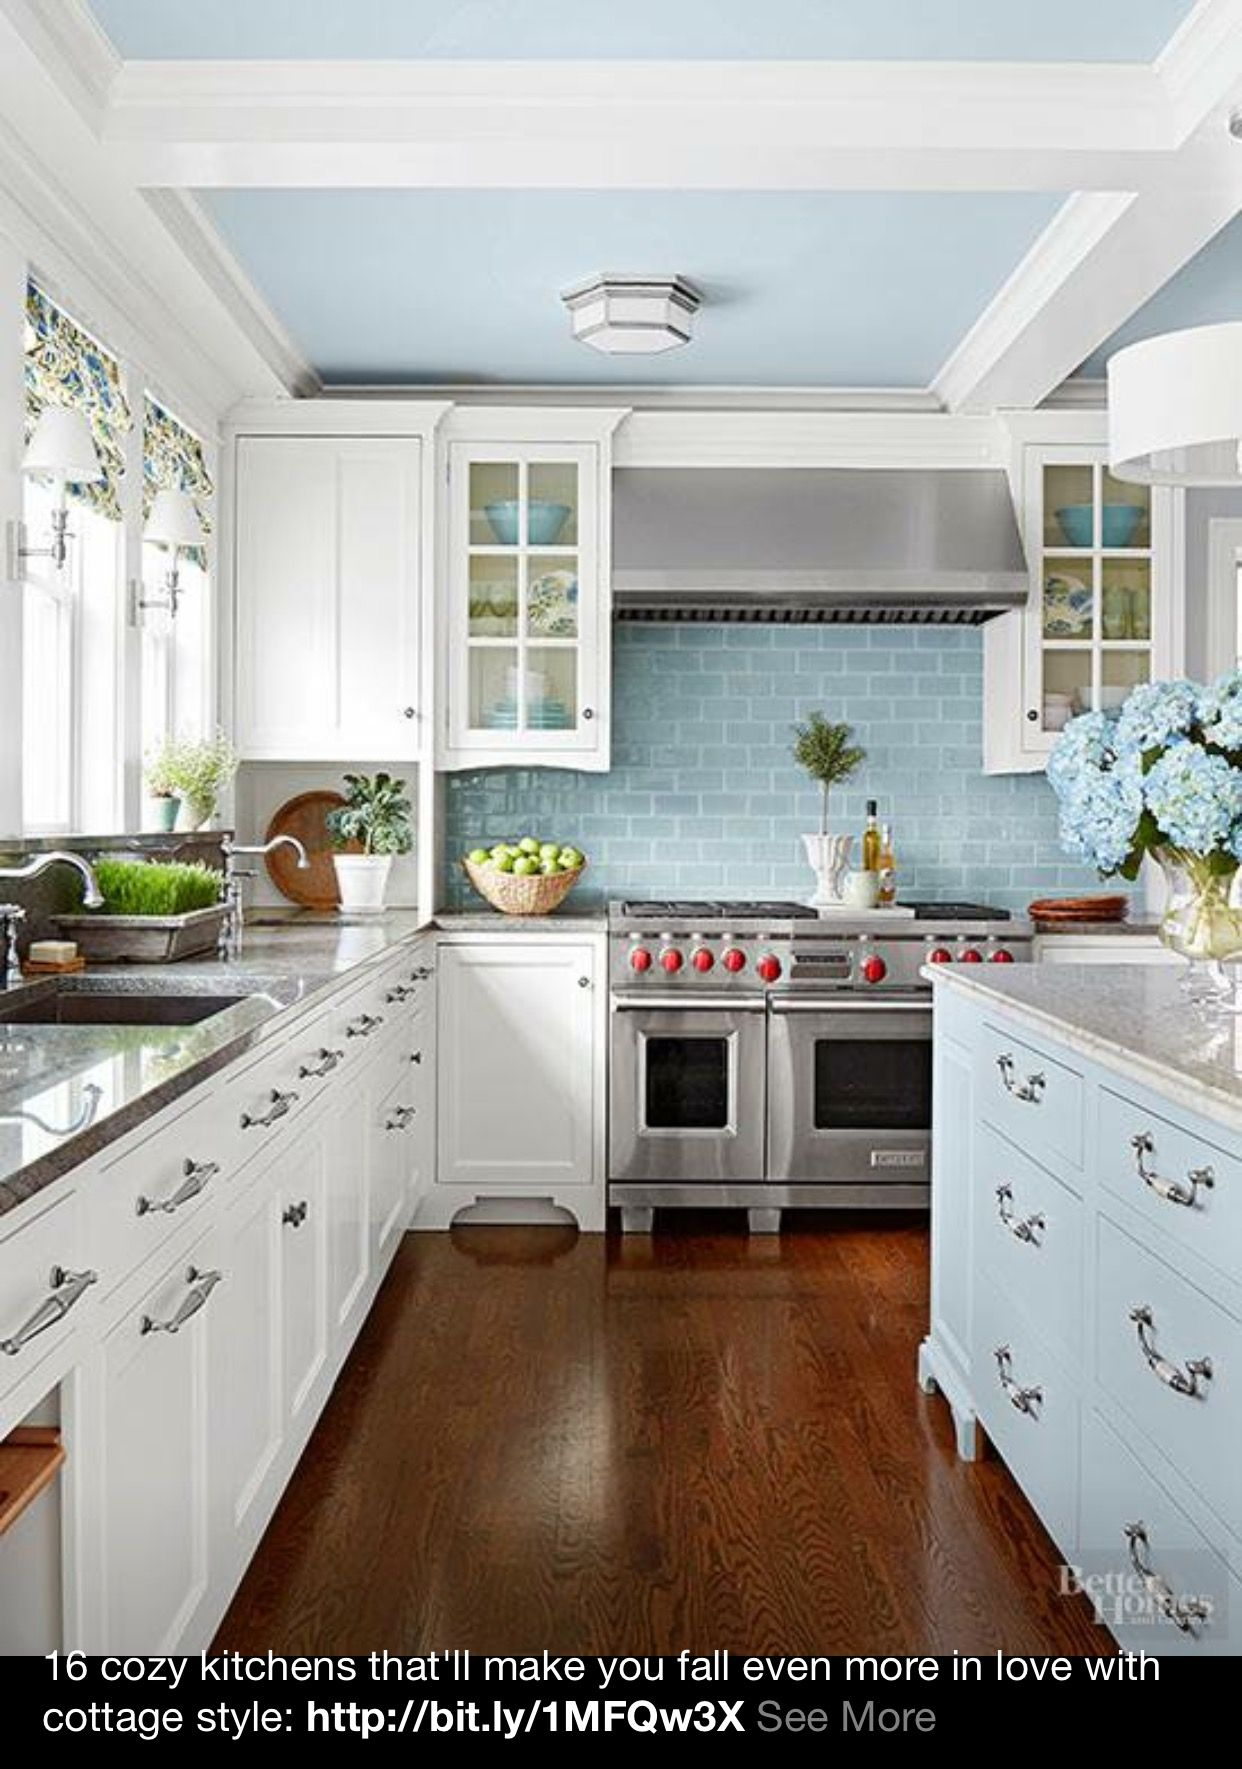 James And I Love This Cottage Kitchen Cabinets Cottage Kitchens Kitchen Design